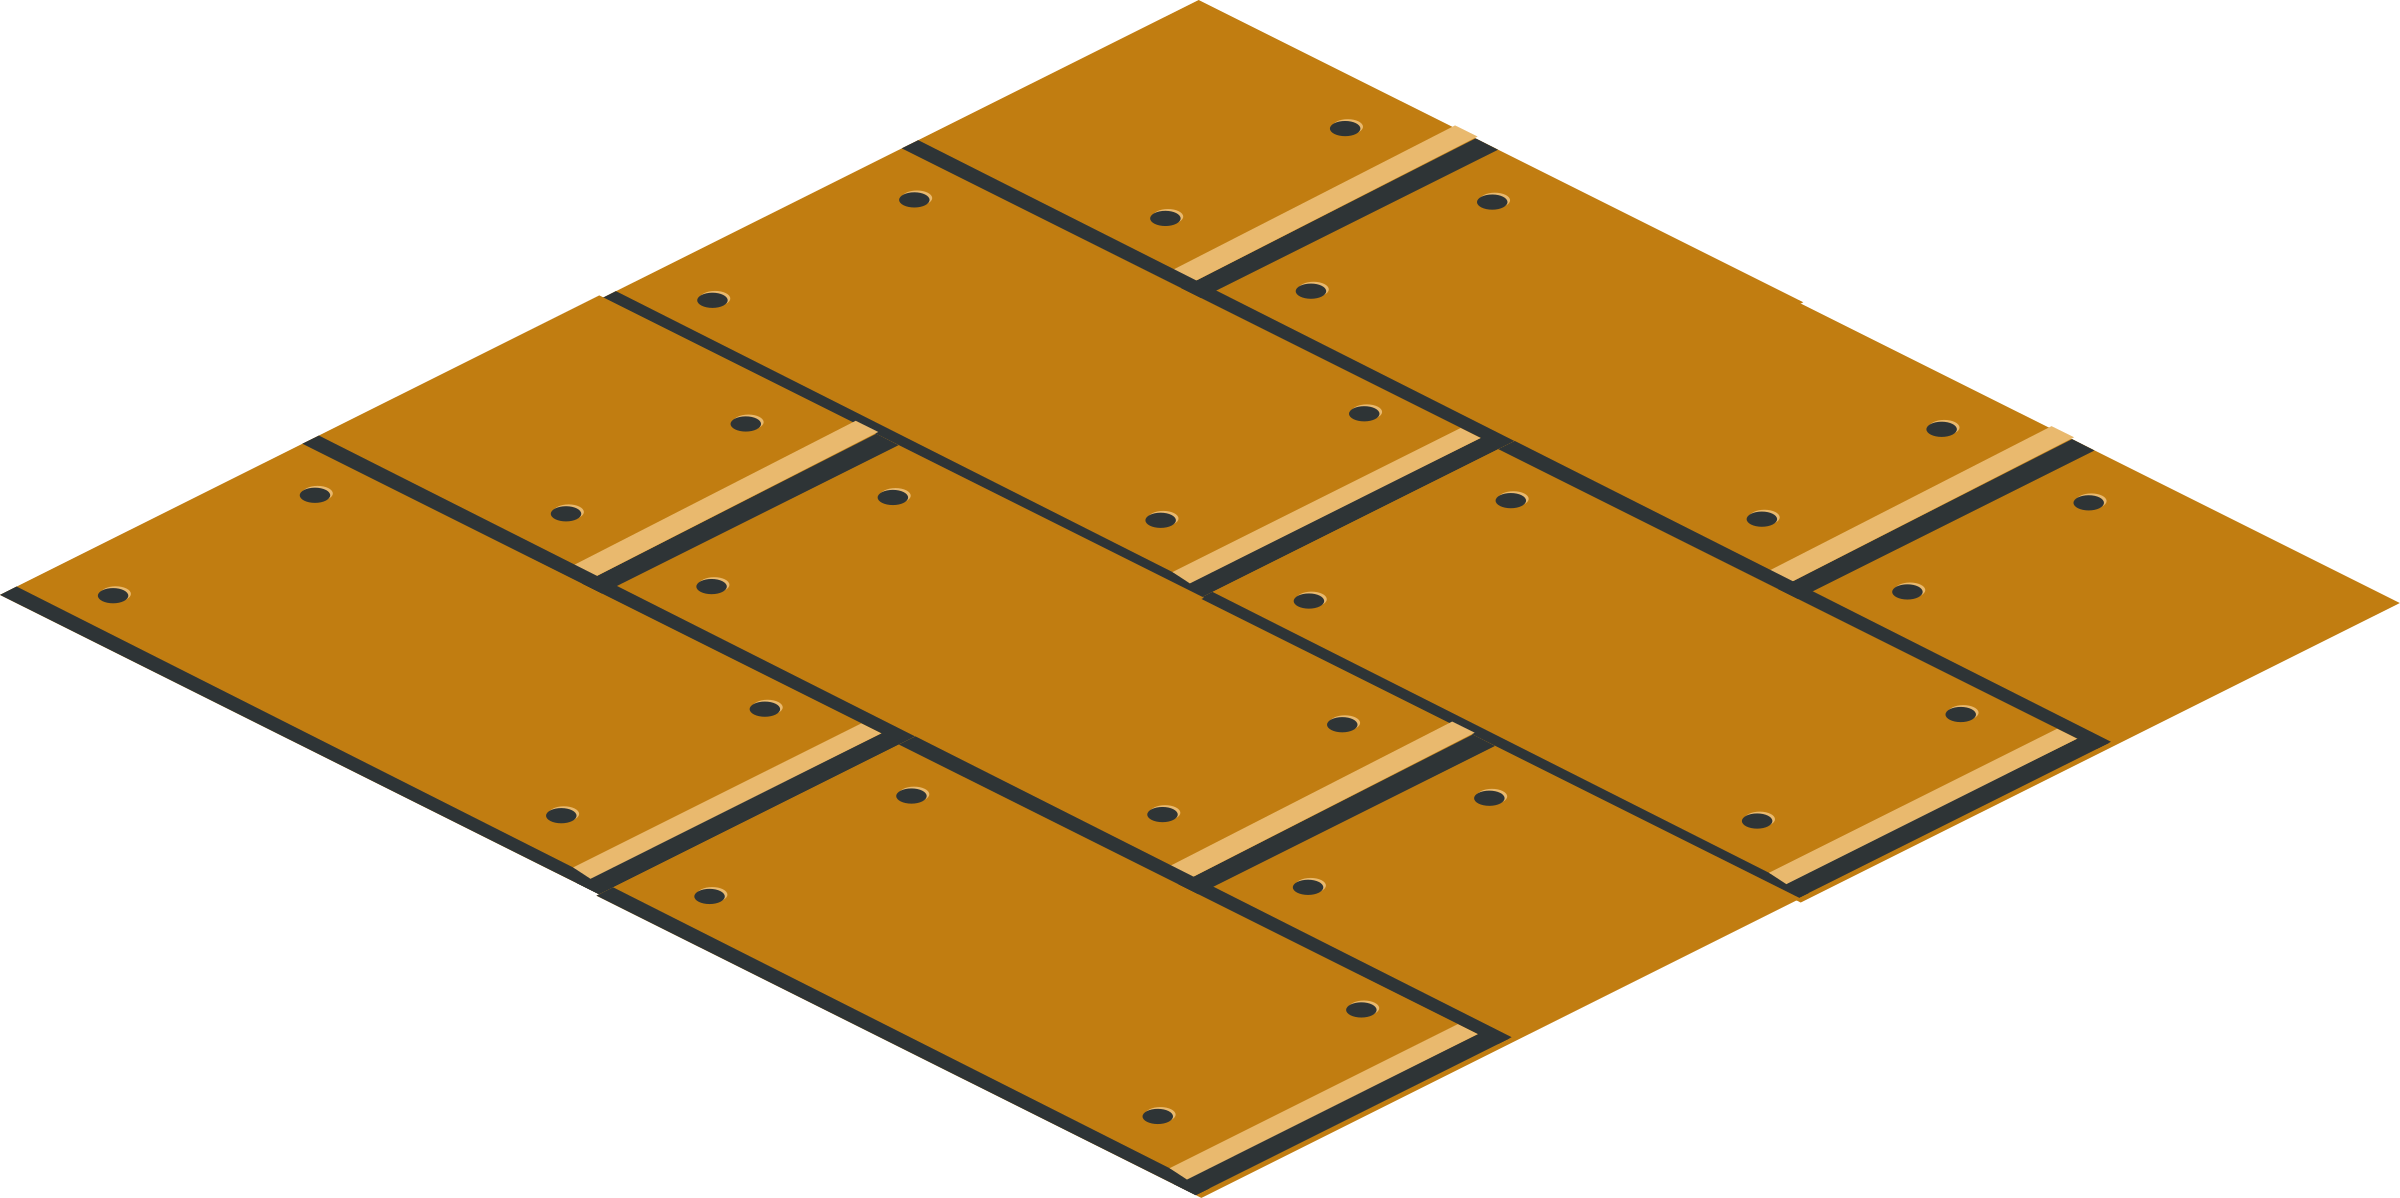 isometric floor tile 6 by rg1024